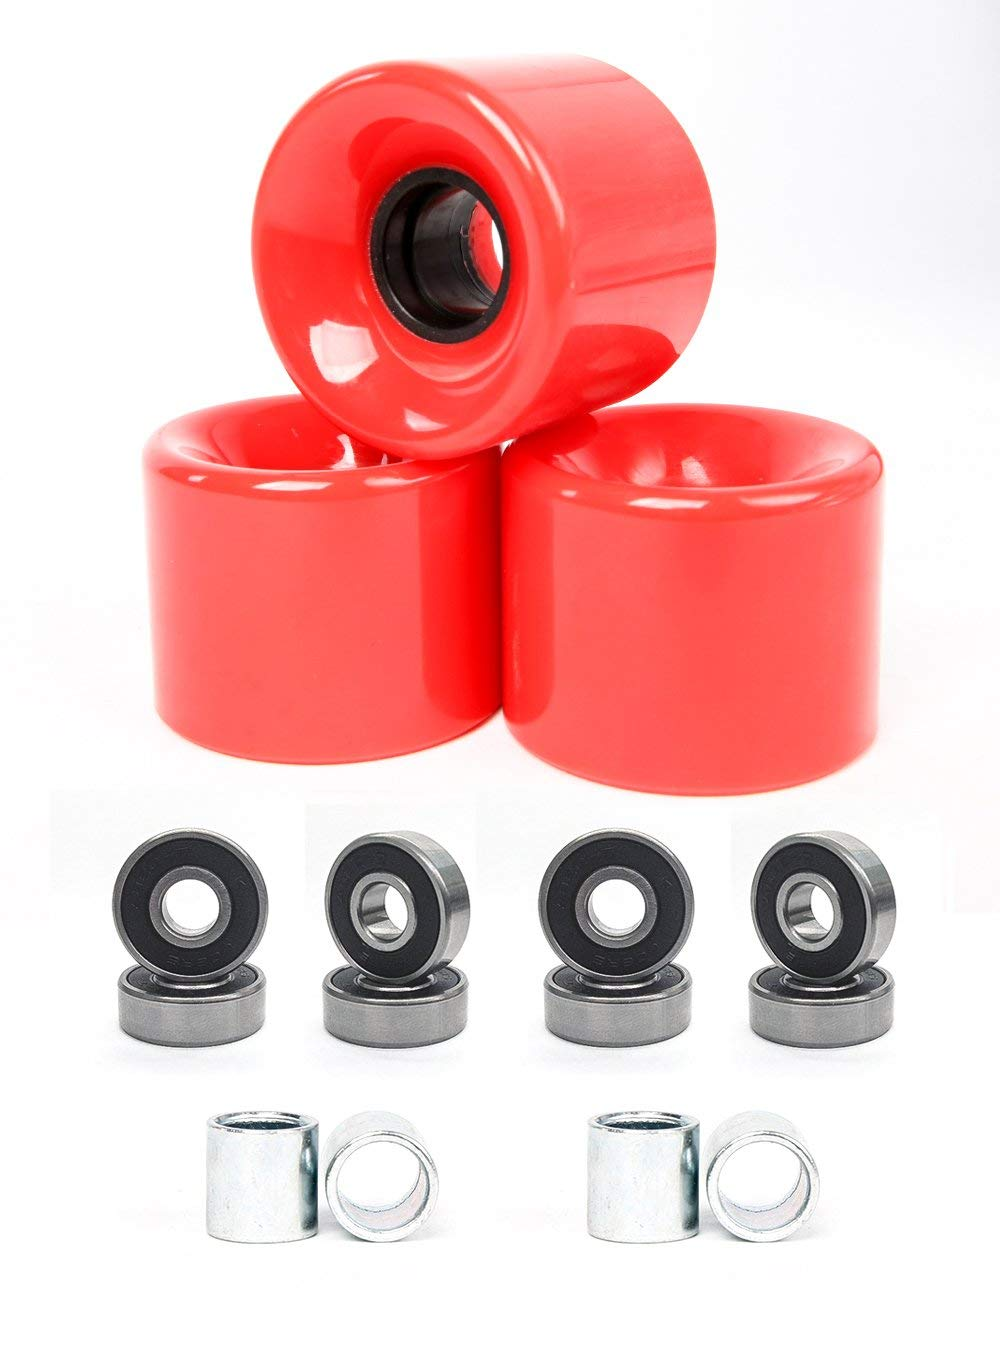 10pcs Skate Wheel Bearing Stepped Spacer Inline or Aluminum Spacers for in-line Skates Accommodate The 8 mm Bearings with 6 mm Axles Asixx Bearing Spacers